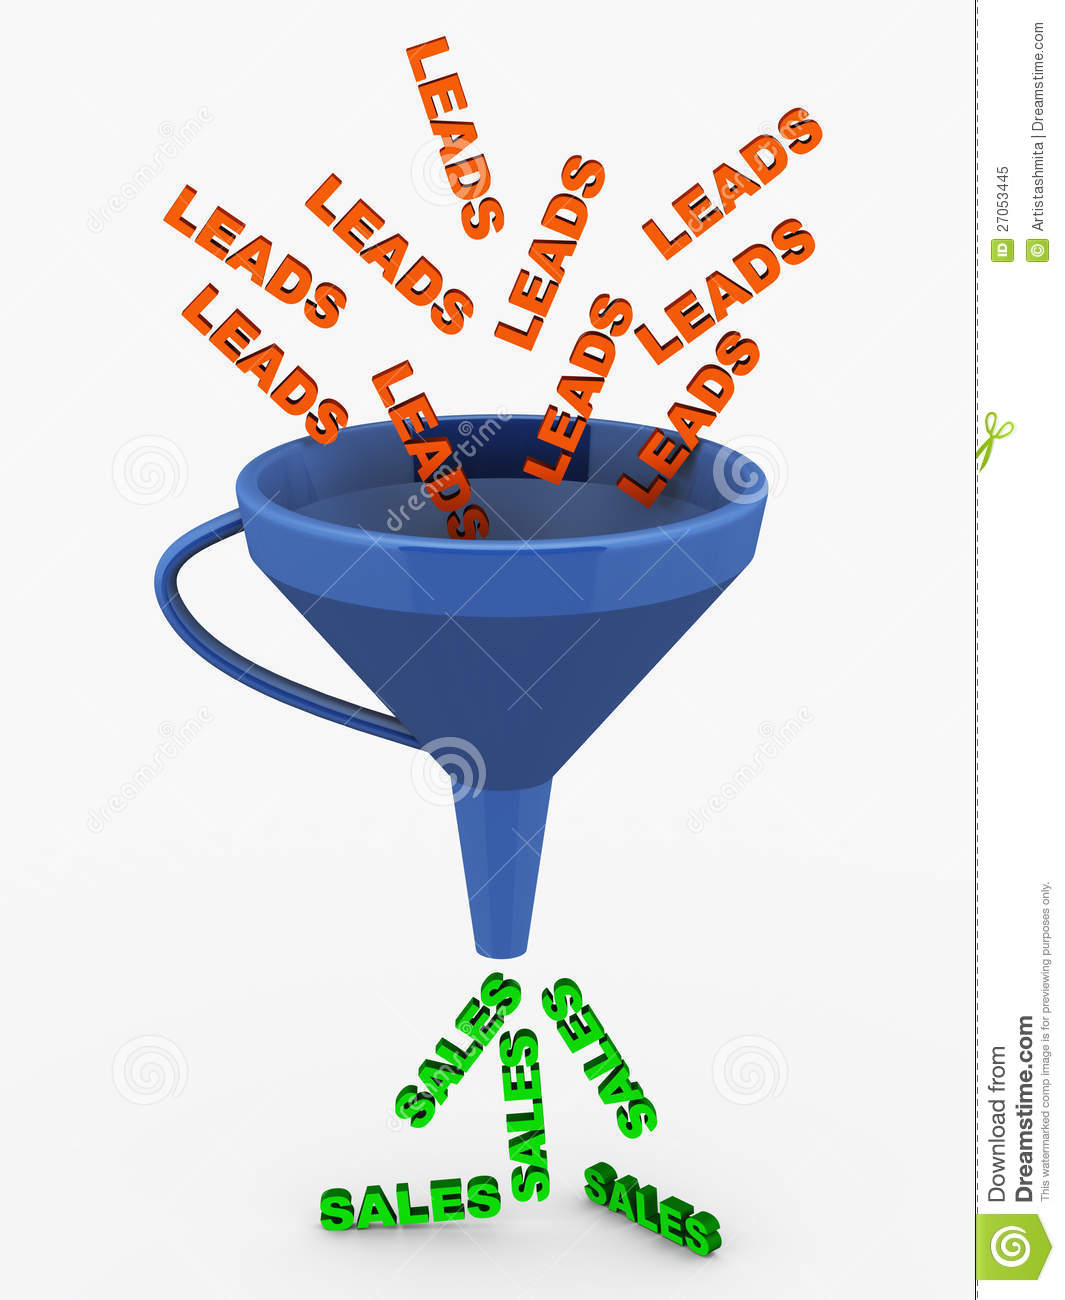 Leads Sales Funnel Royalty Free Stock Photo Image 27053445